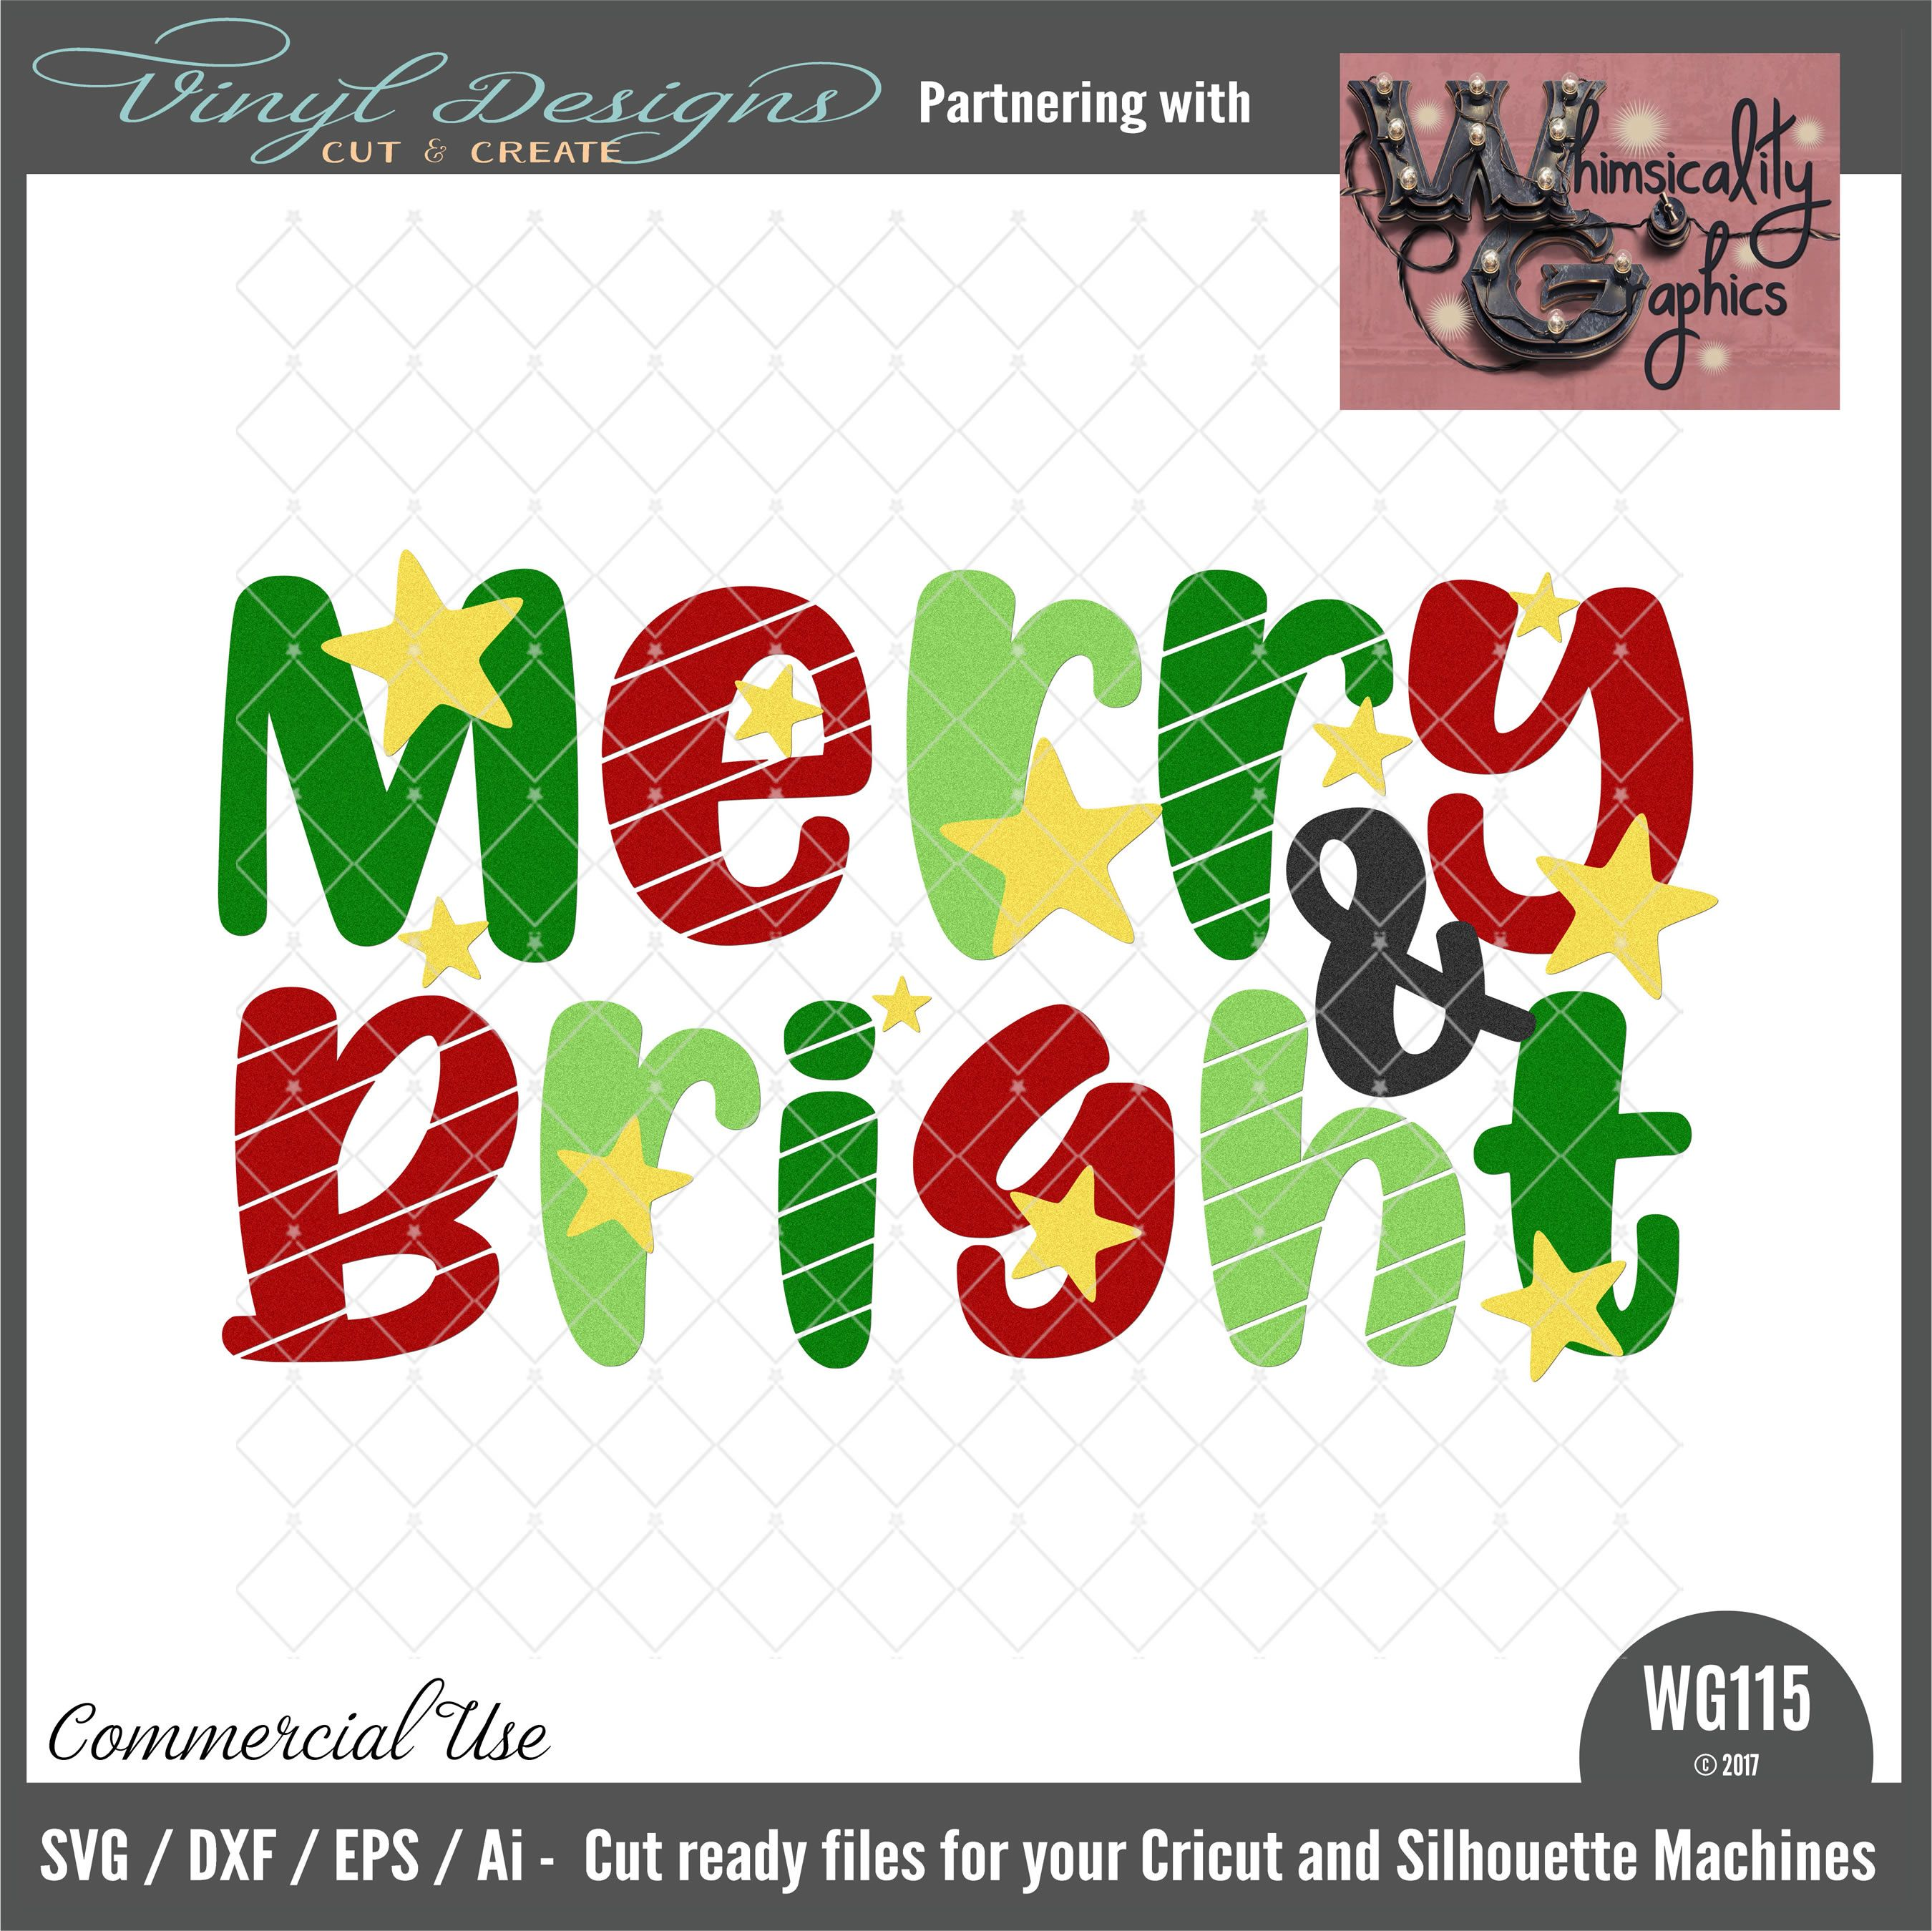 WG115 Merry and Bright. Sold By Whimsicality GraphicsSmall